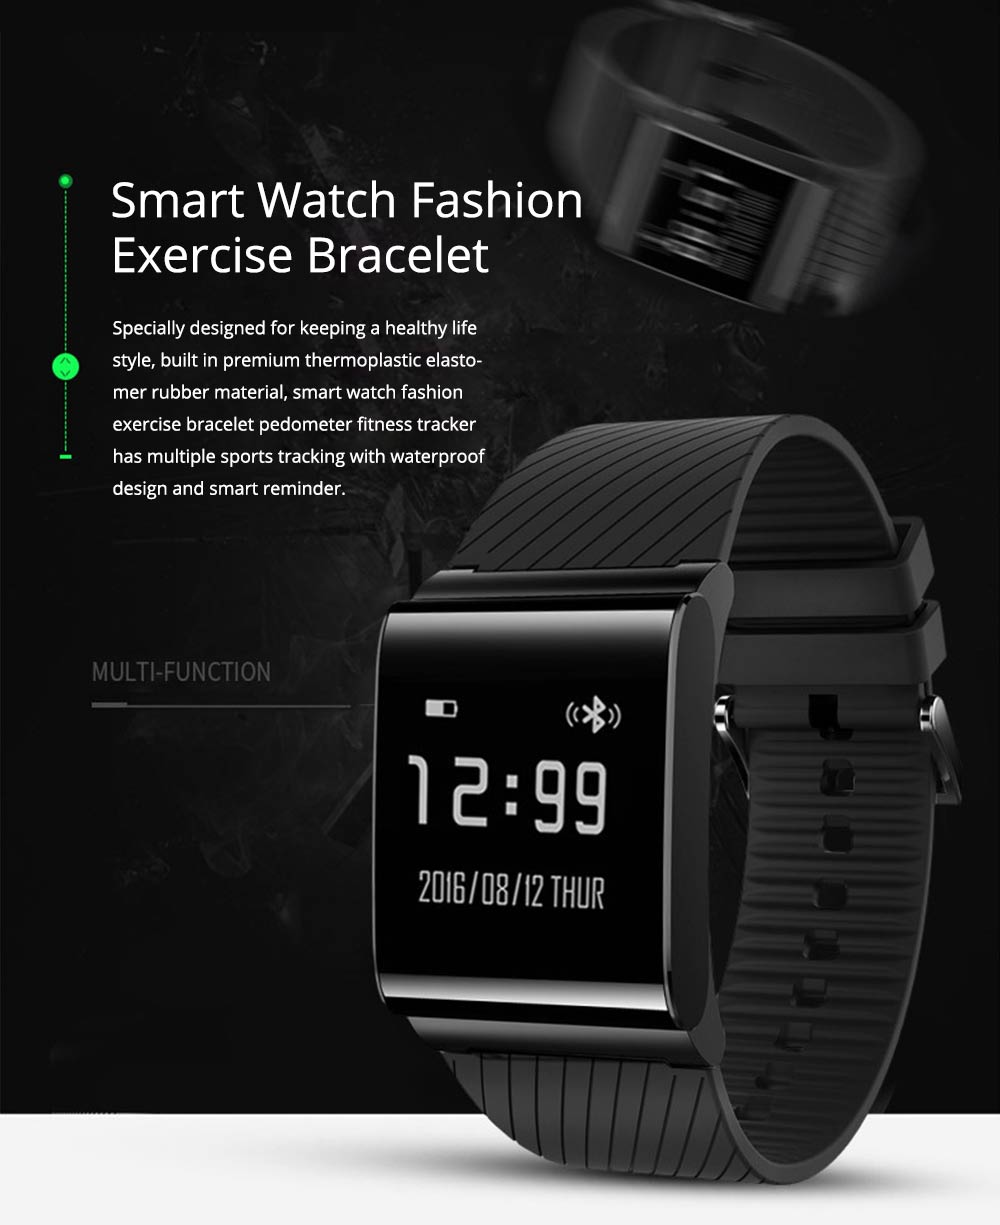 Fashion Exercise Bracelet Pedometer Fitness Tracker for Heart Rate Monitoring Blood Pressure 0